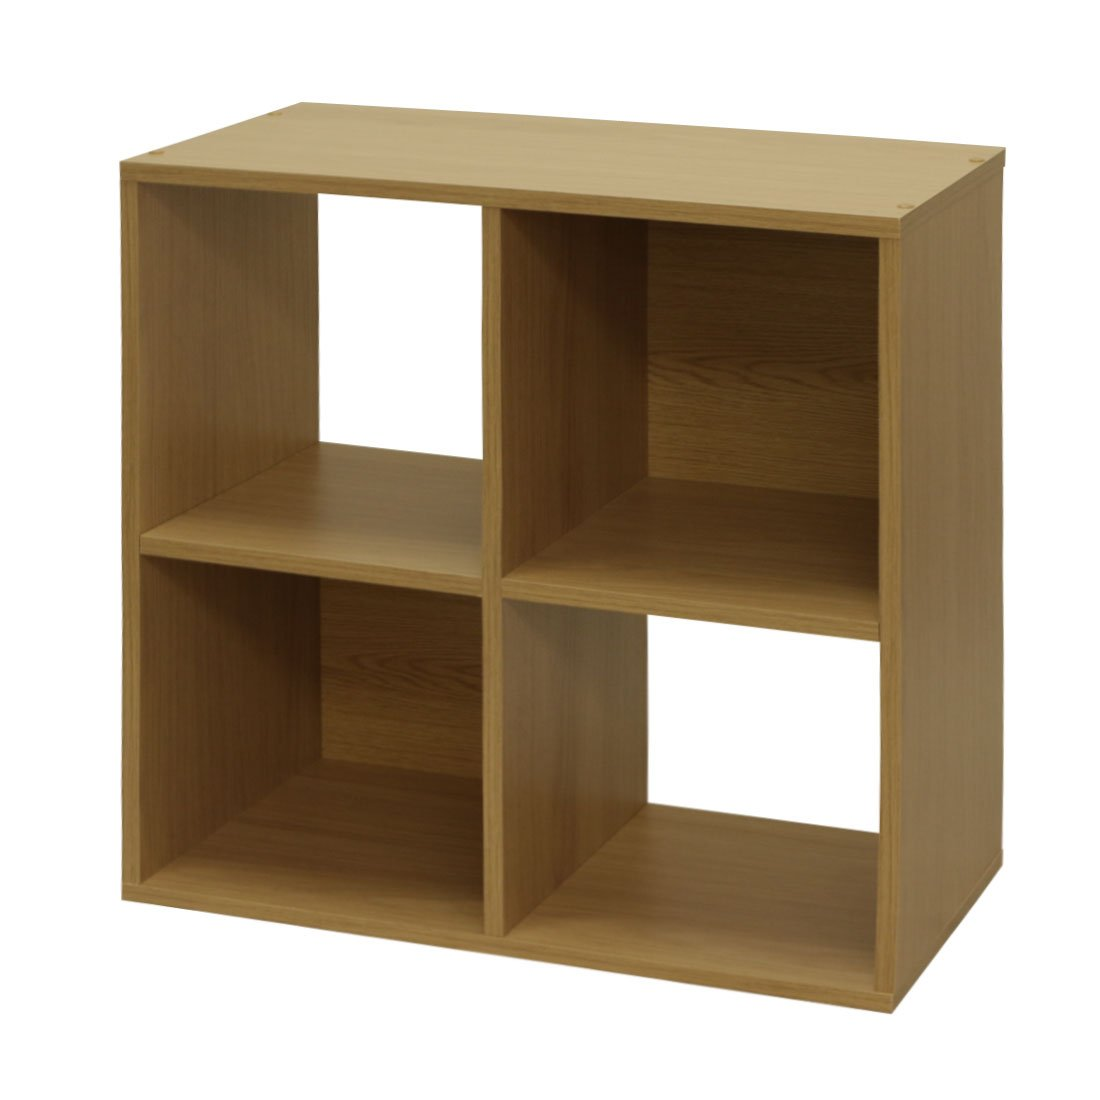 Devoted2Home Boldon 4-Shelf Unit Storage Furniture, Wood, White, 29.5 x 61 x 61.2 cm AA511315SOH